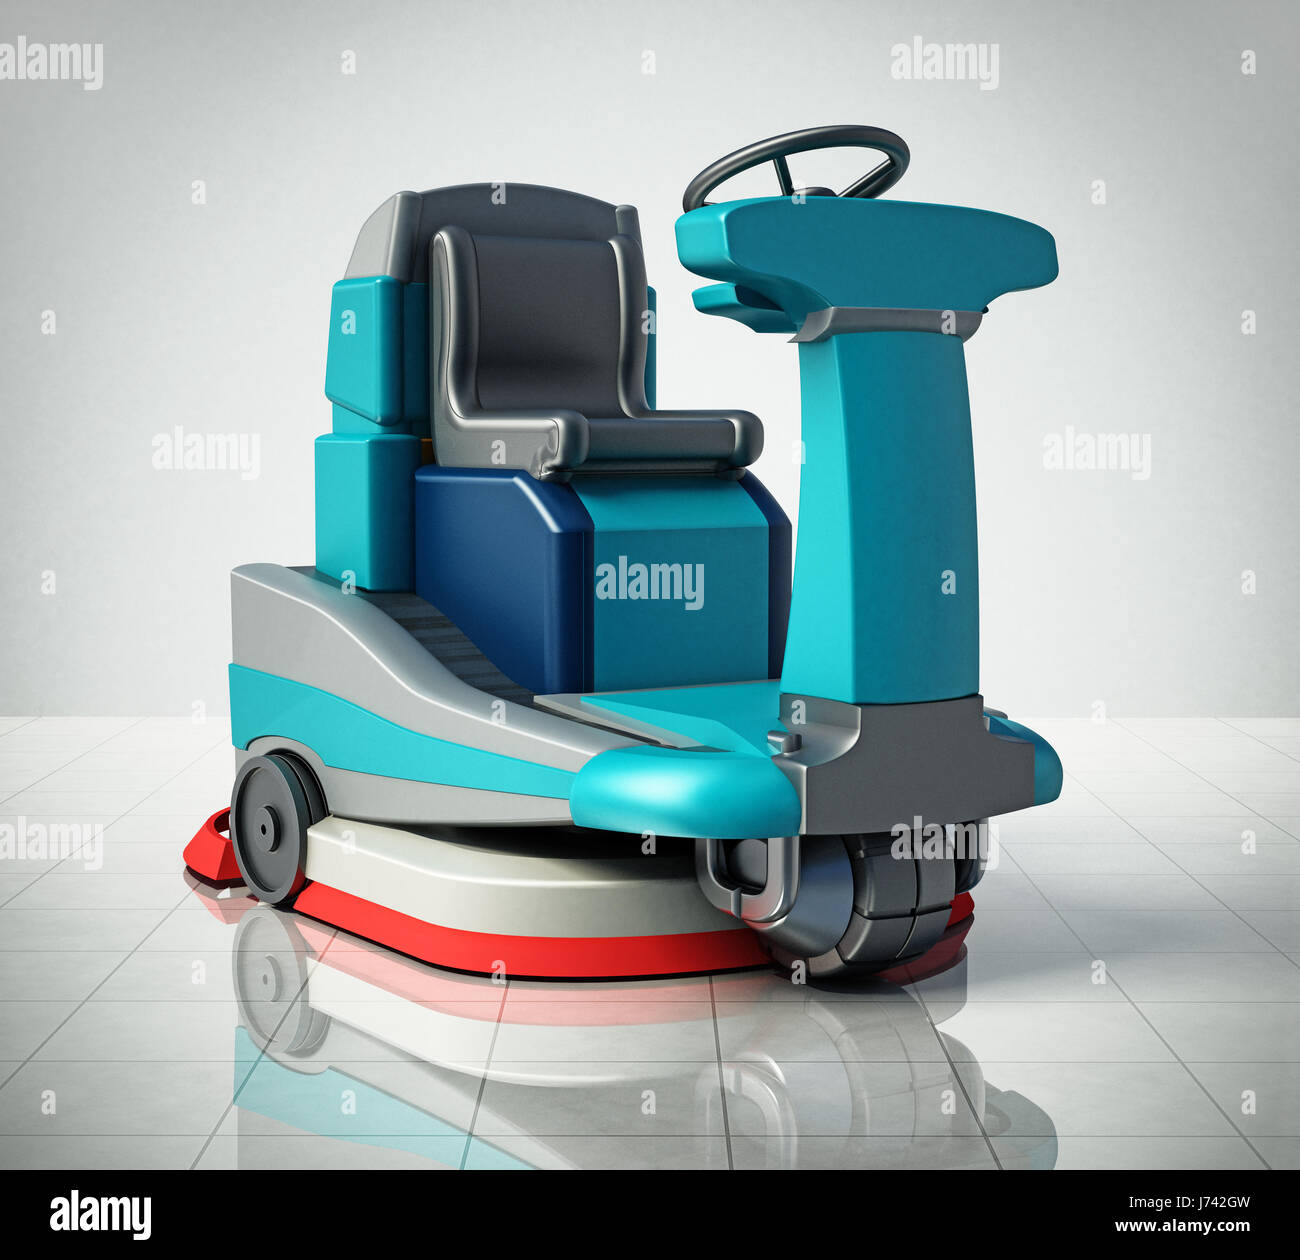 Cleaning machine floor stock photos cleaning machine for Floor cleaning machine